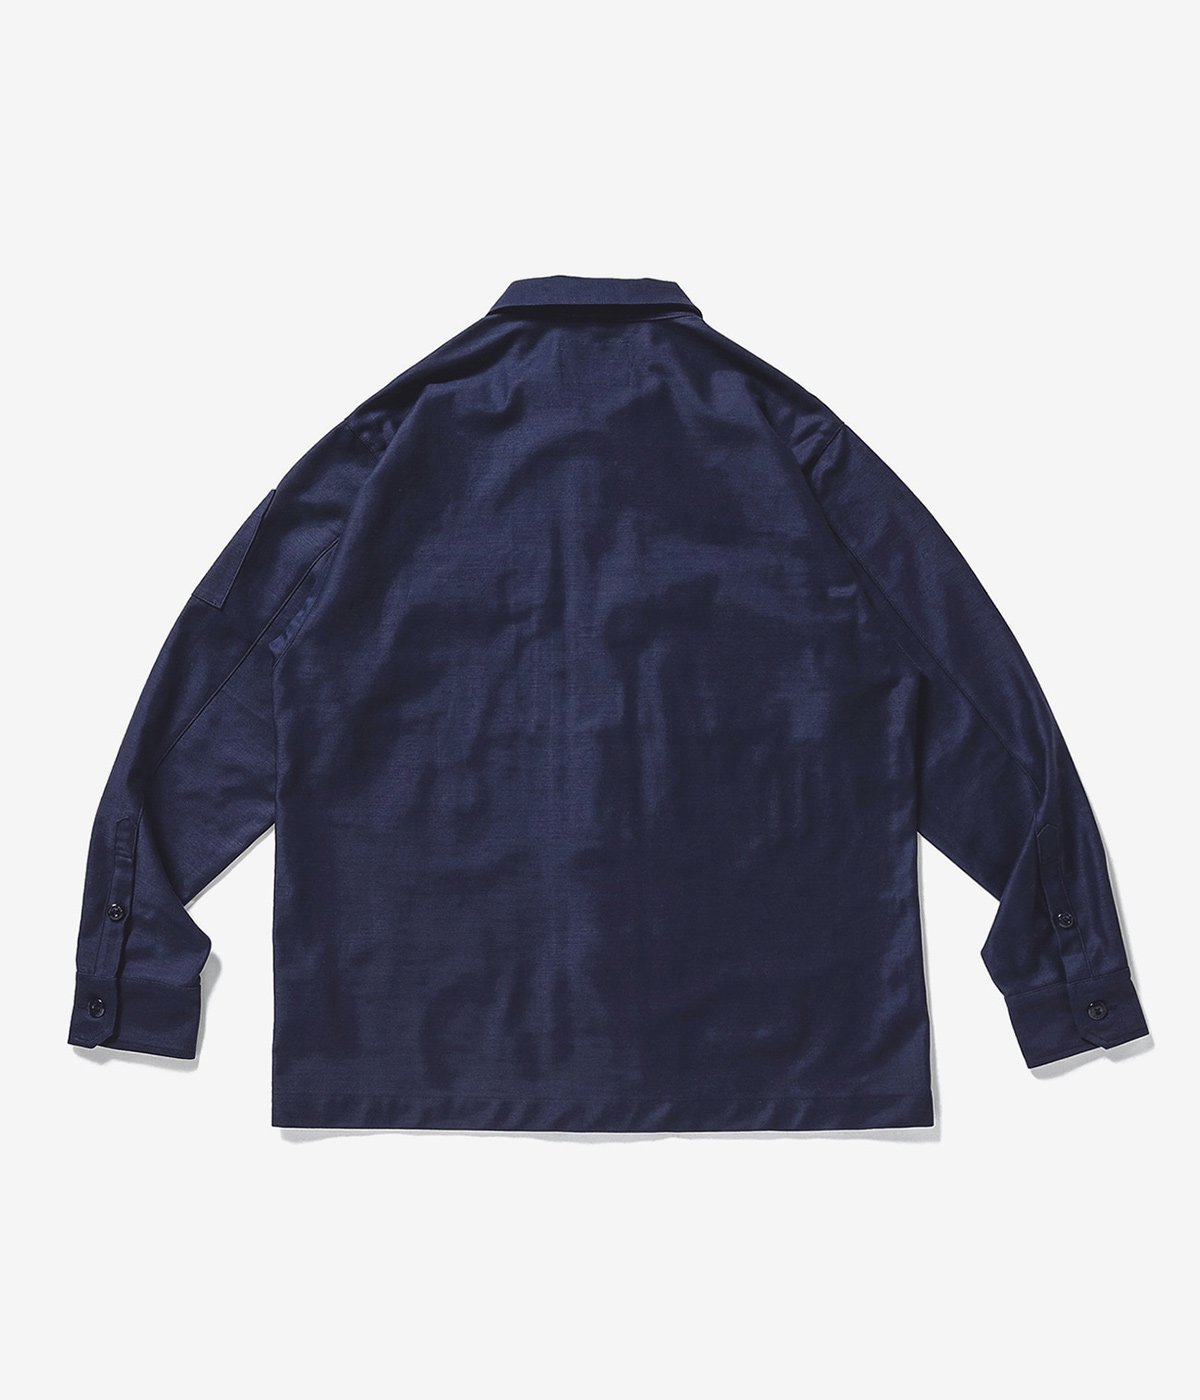 BUDS LS / SHIRT. COTTON. SATIN